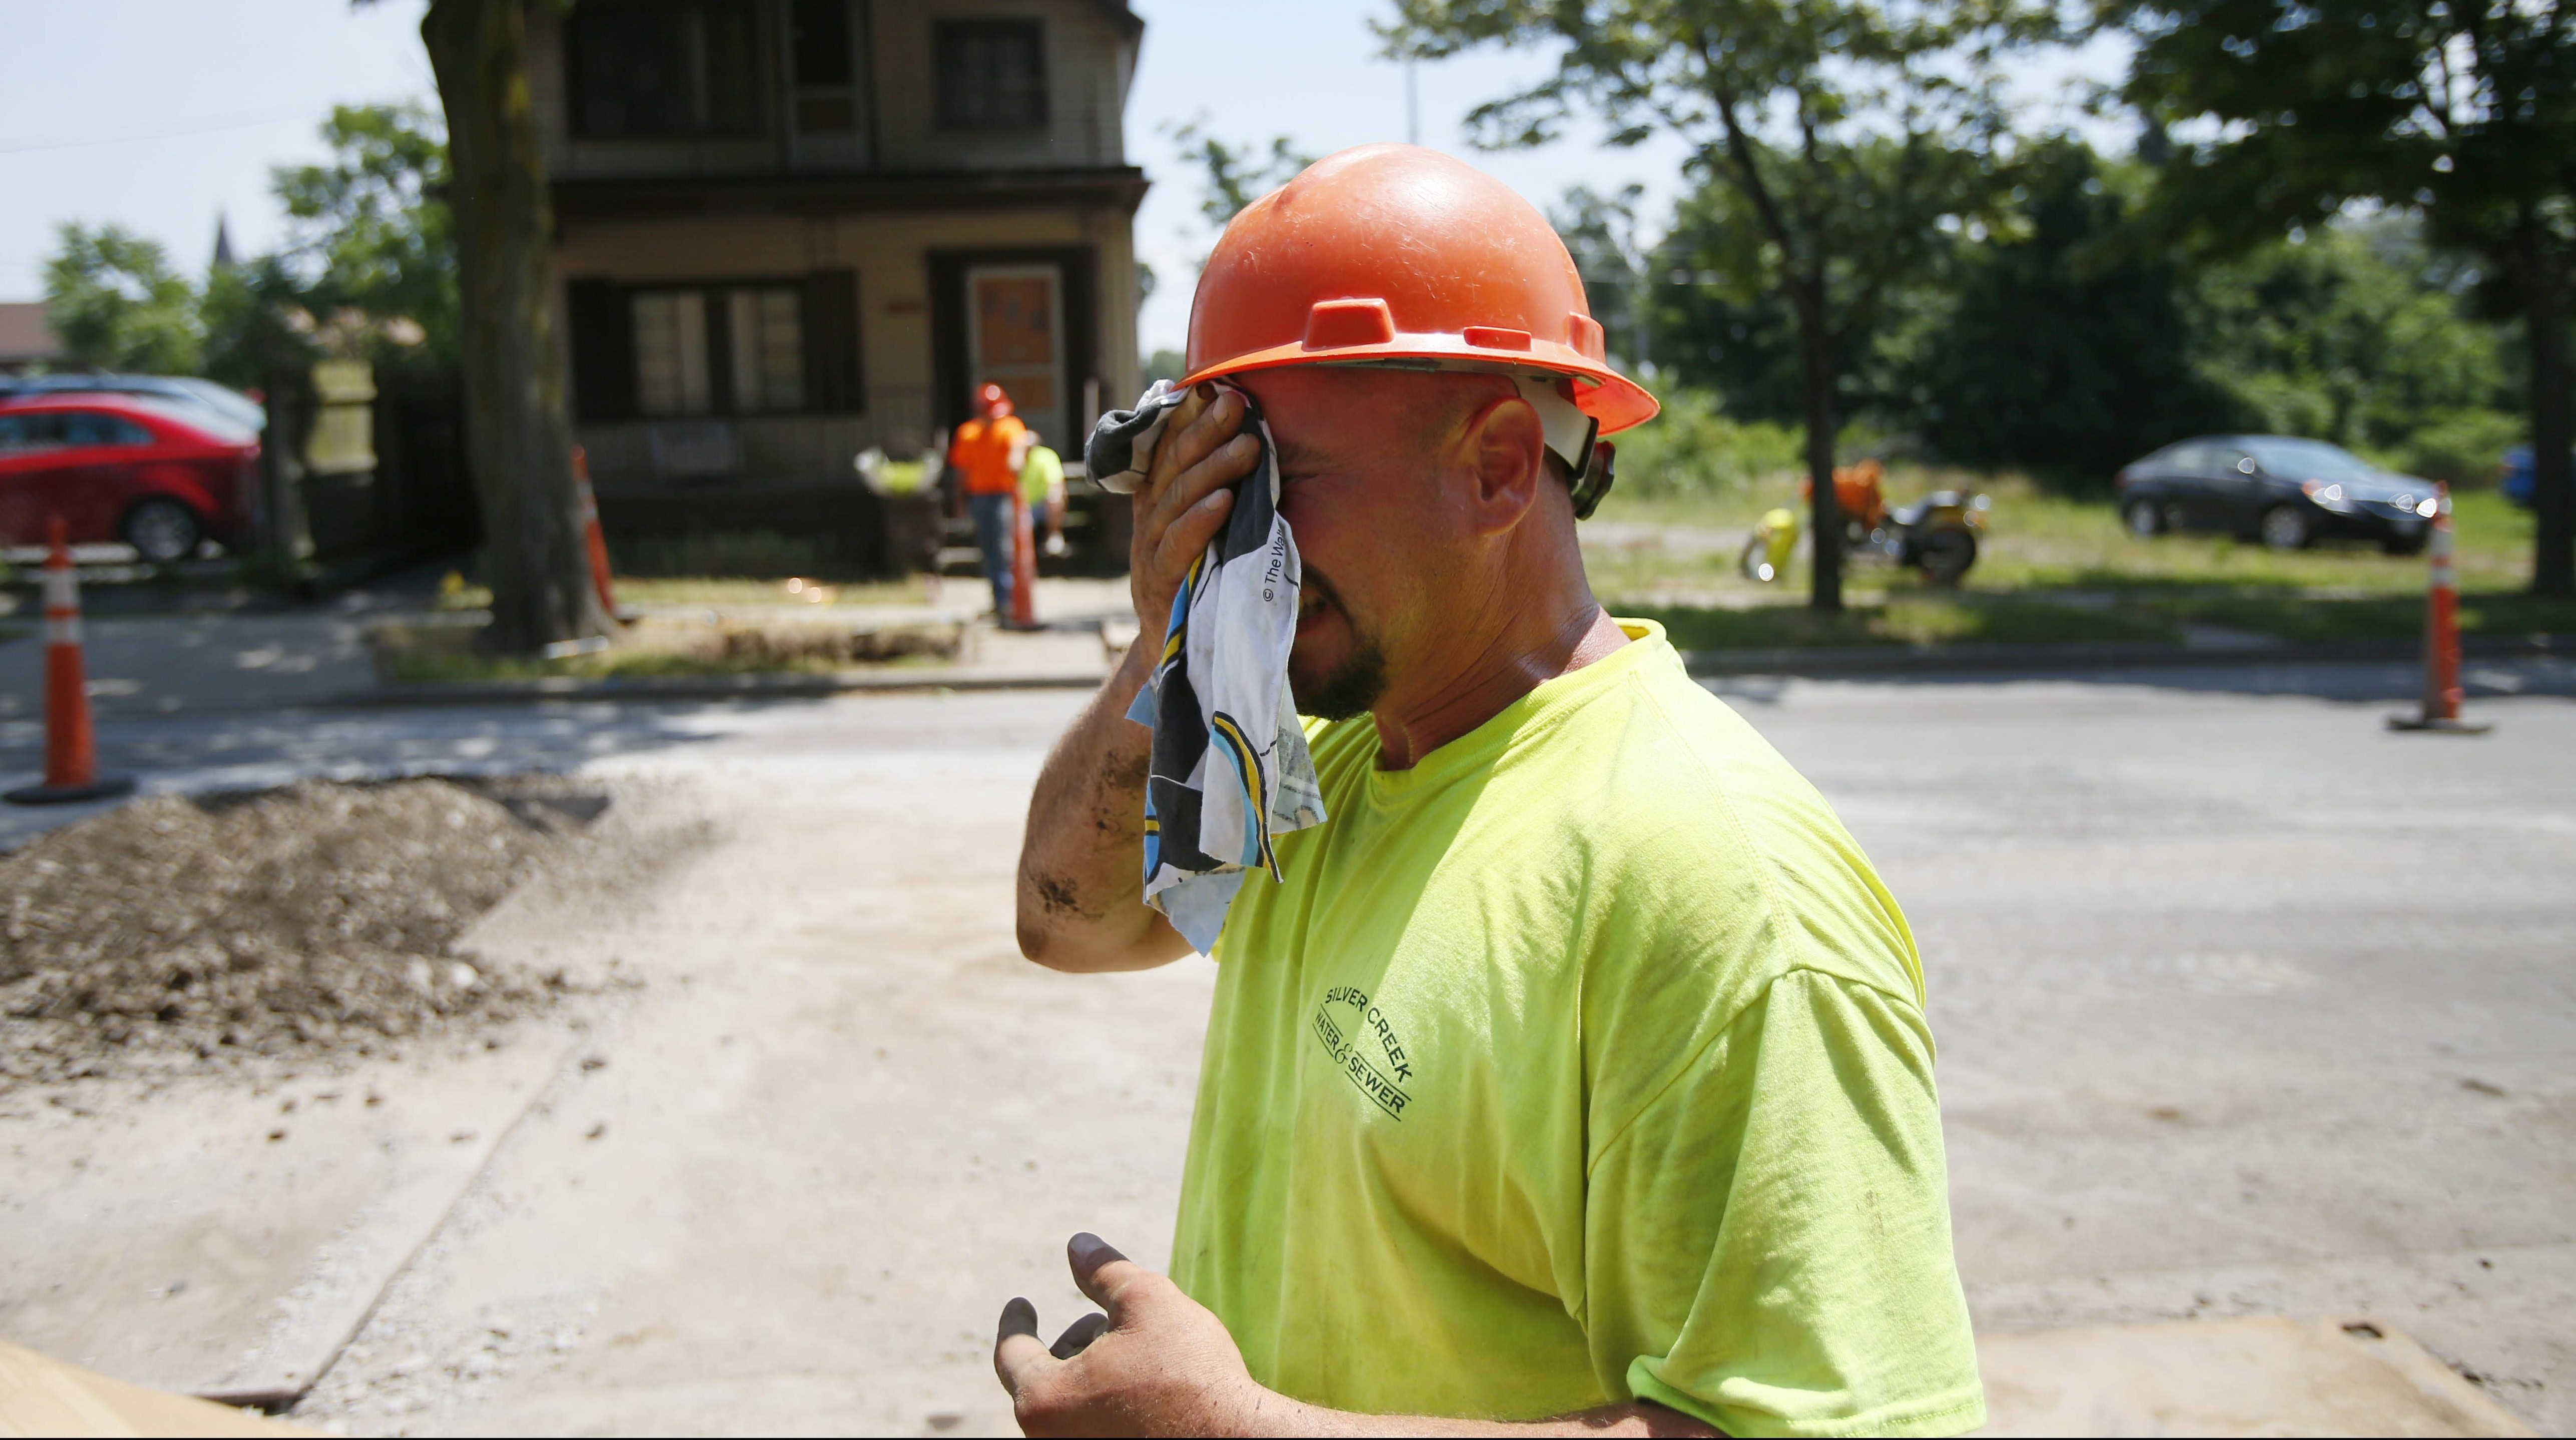 Construction worker Mike Poorten wipes sweat from his brow while on the job in 2013. (Derek Gee/News file photo)